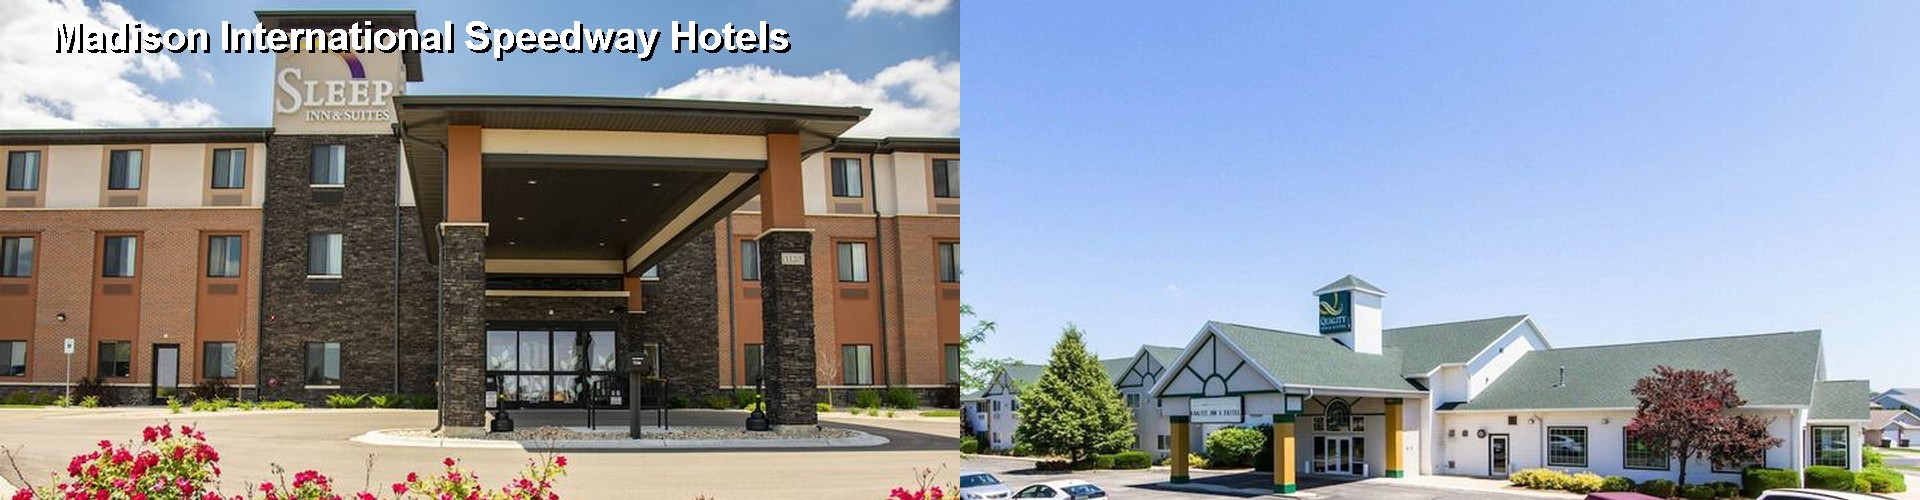 5 Best Hotels near Madison International Speedway